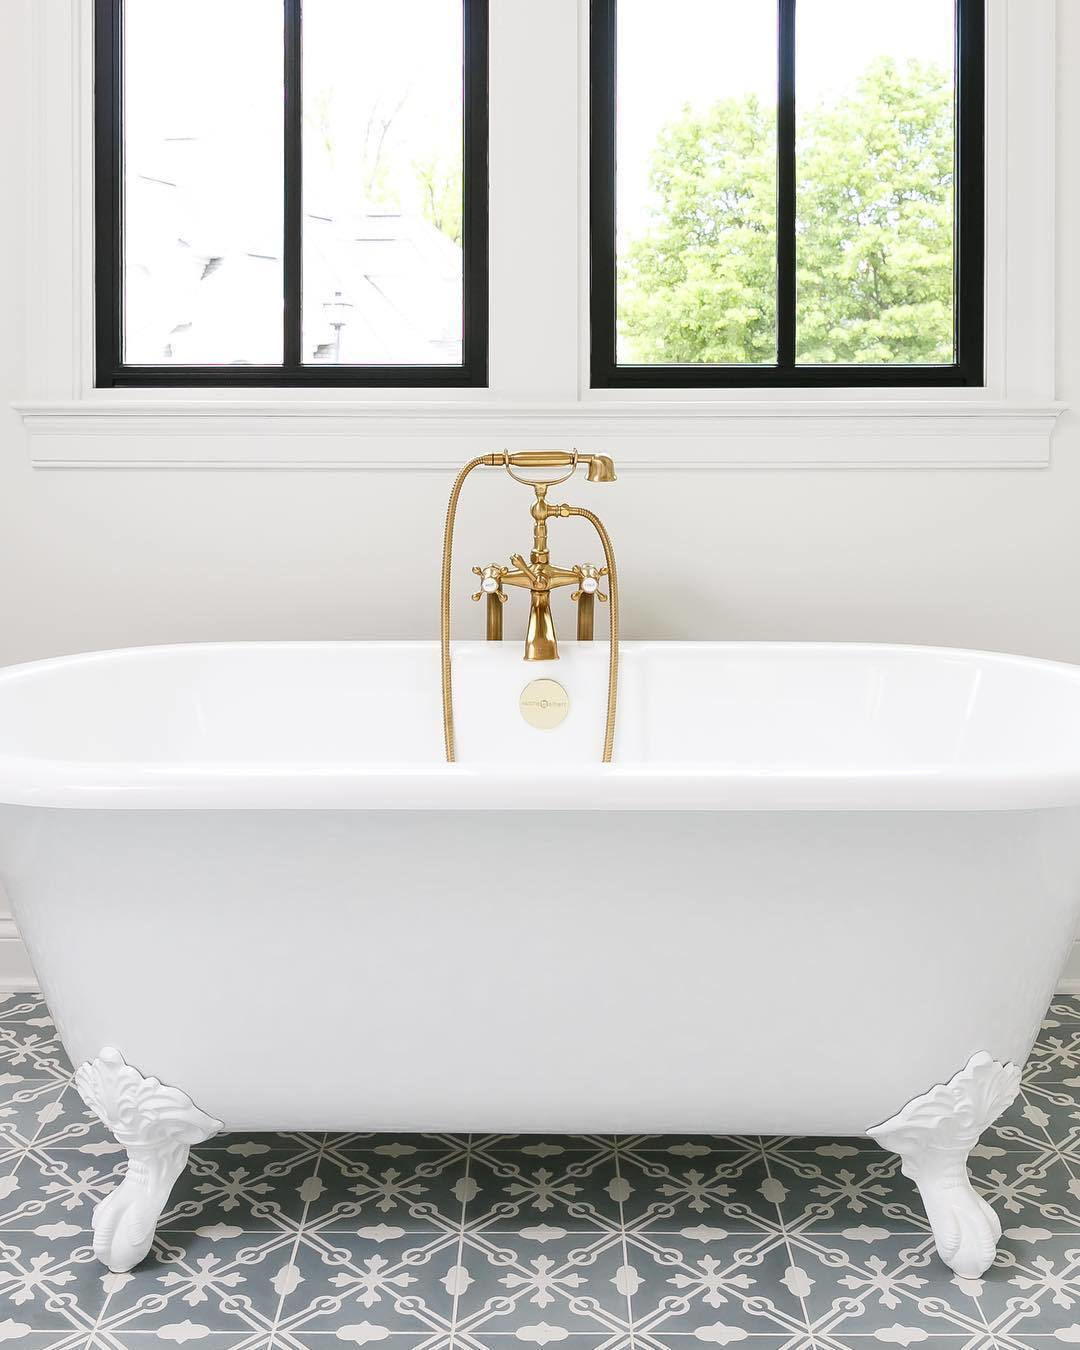 newport brass traditional freestanding clawfoot tub filler with handshower and cross handles in satin gold - the ultimate guide to luxury plumbing by the delight of design